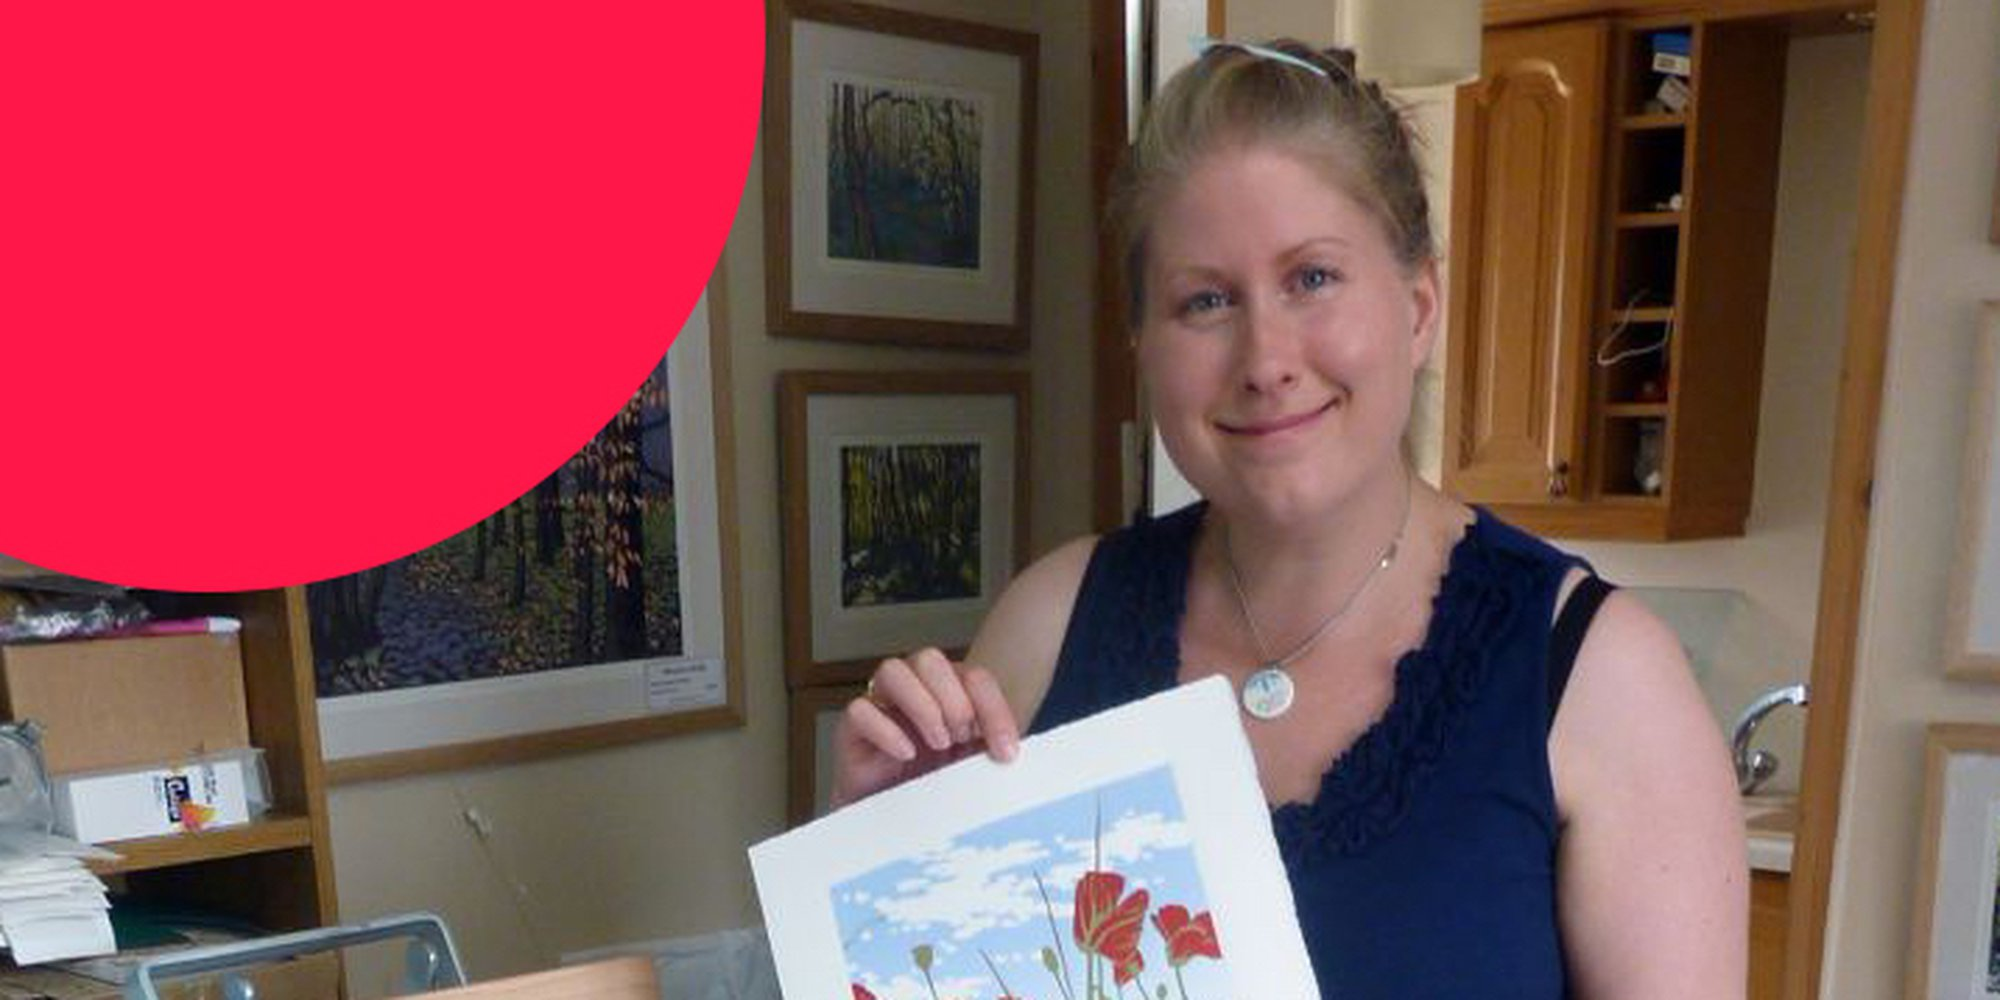 Alexandra Buckle talks about her Artfinder sucess, finding her artistic confidence and being most inspired when dog walking!